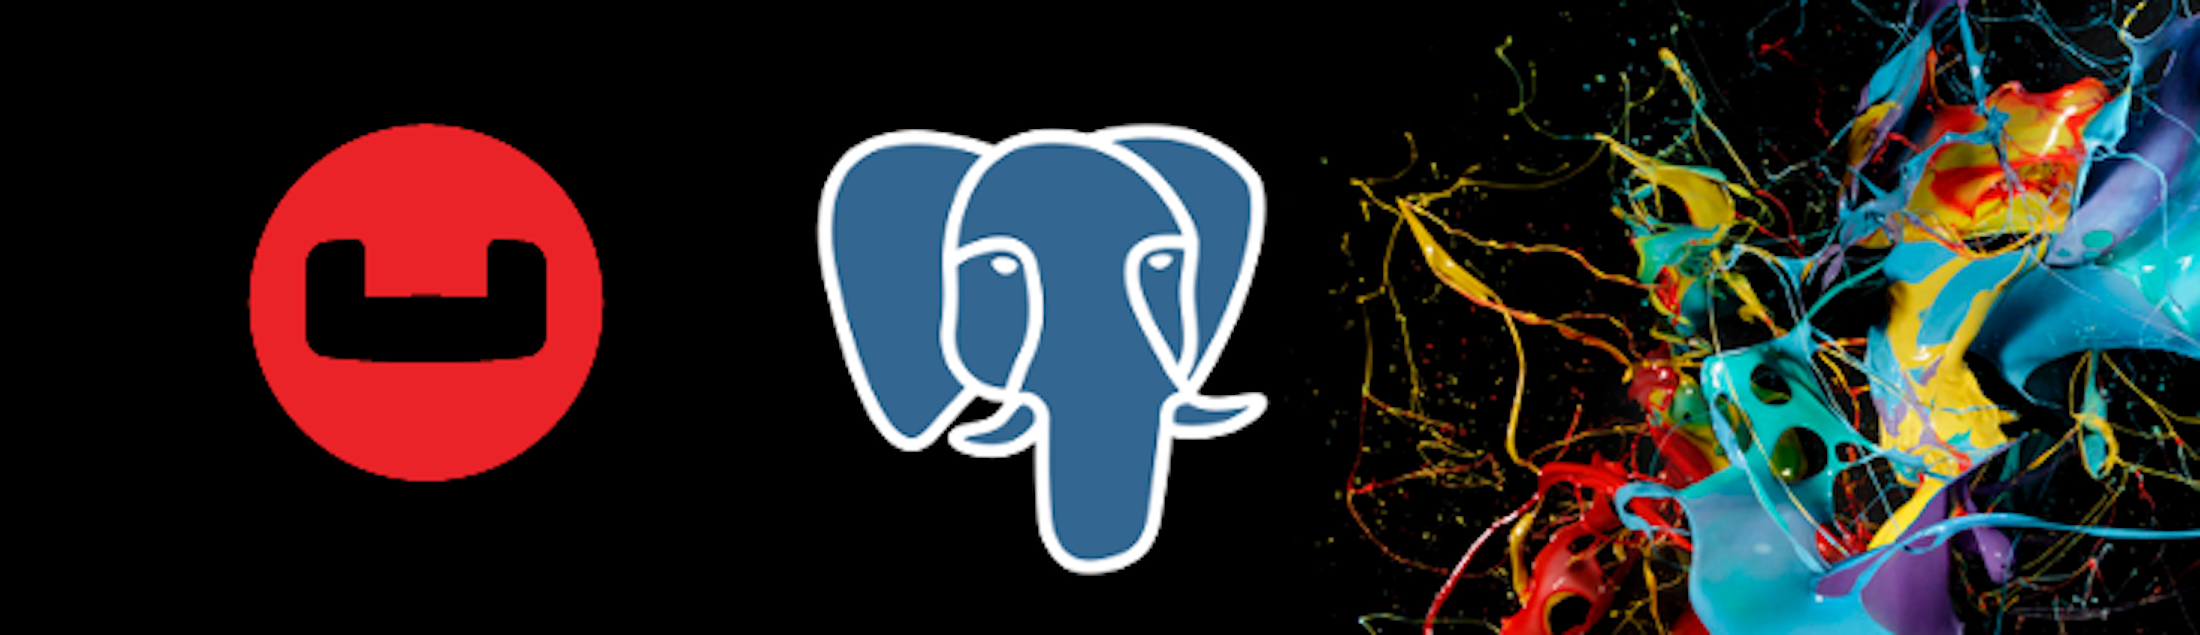 The Couchbase next to the Postgres logo with a splash of color to the right of both